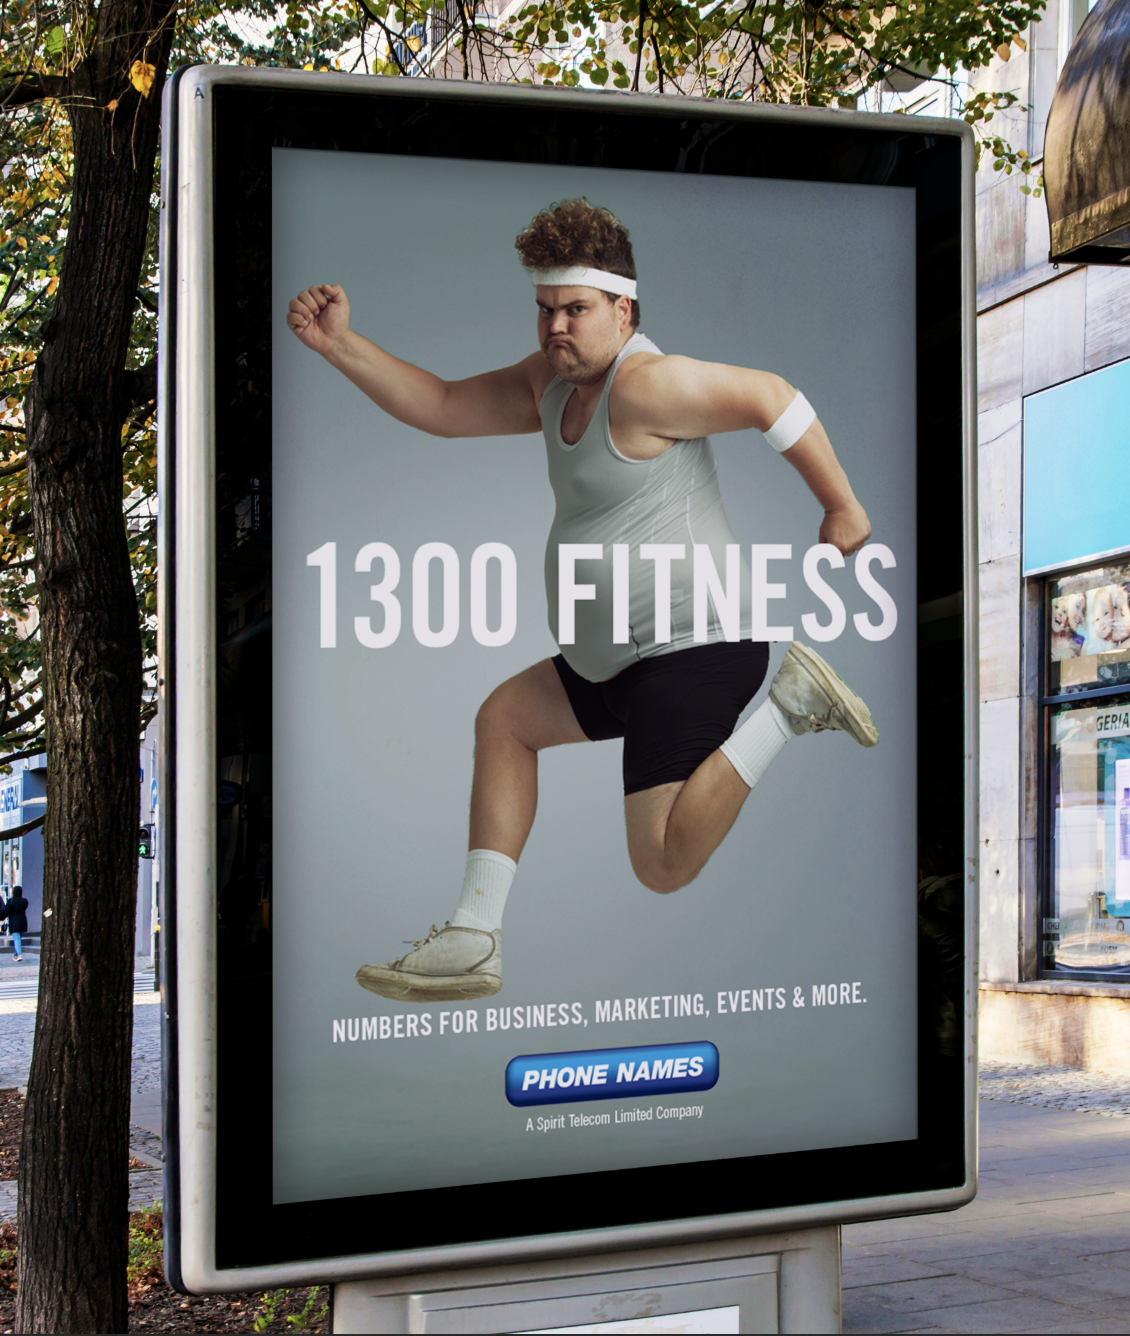 Phone Names Outdoor Ad - 1300 Fitness